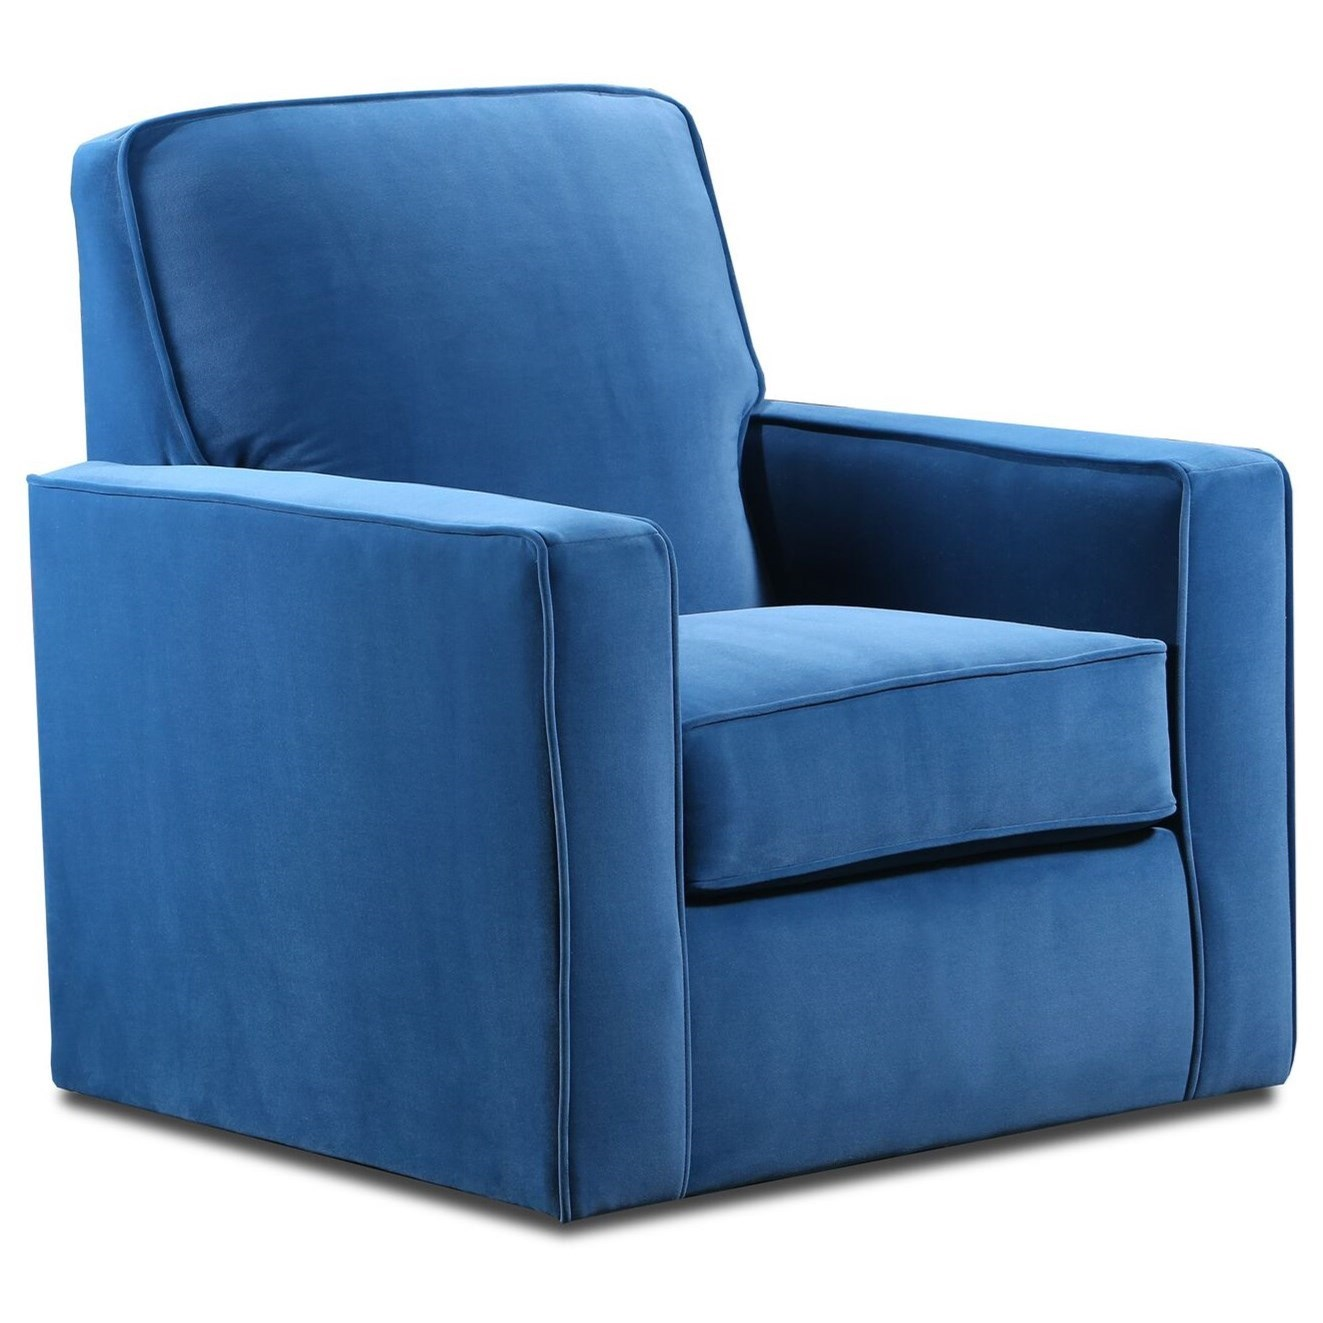 8100 Swivel Chair by Vendor 610 at Becker Furniture